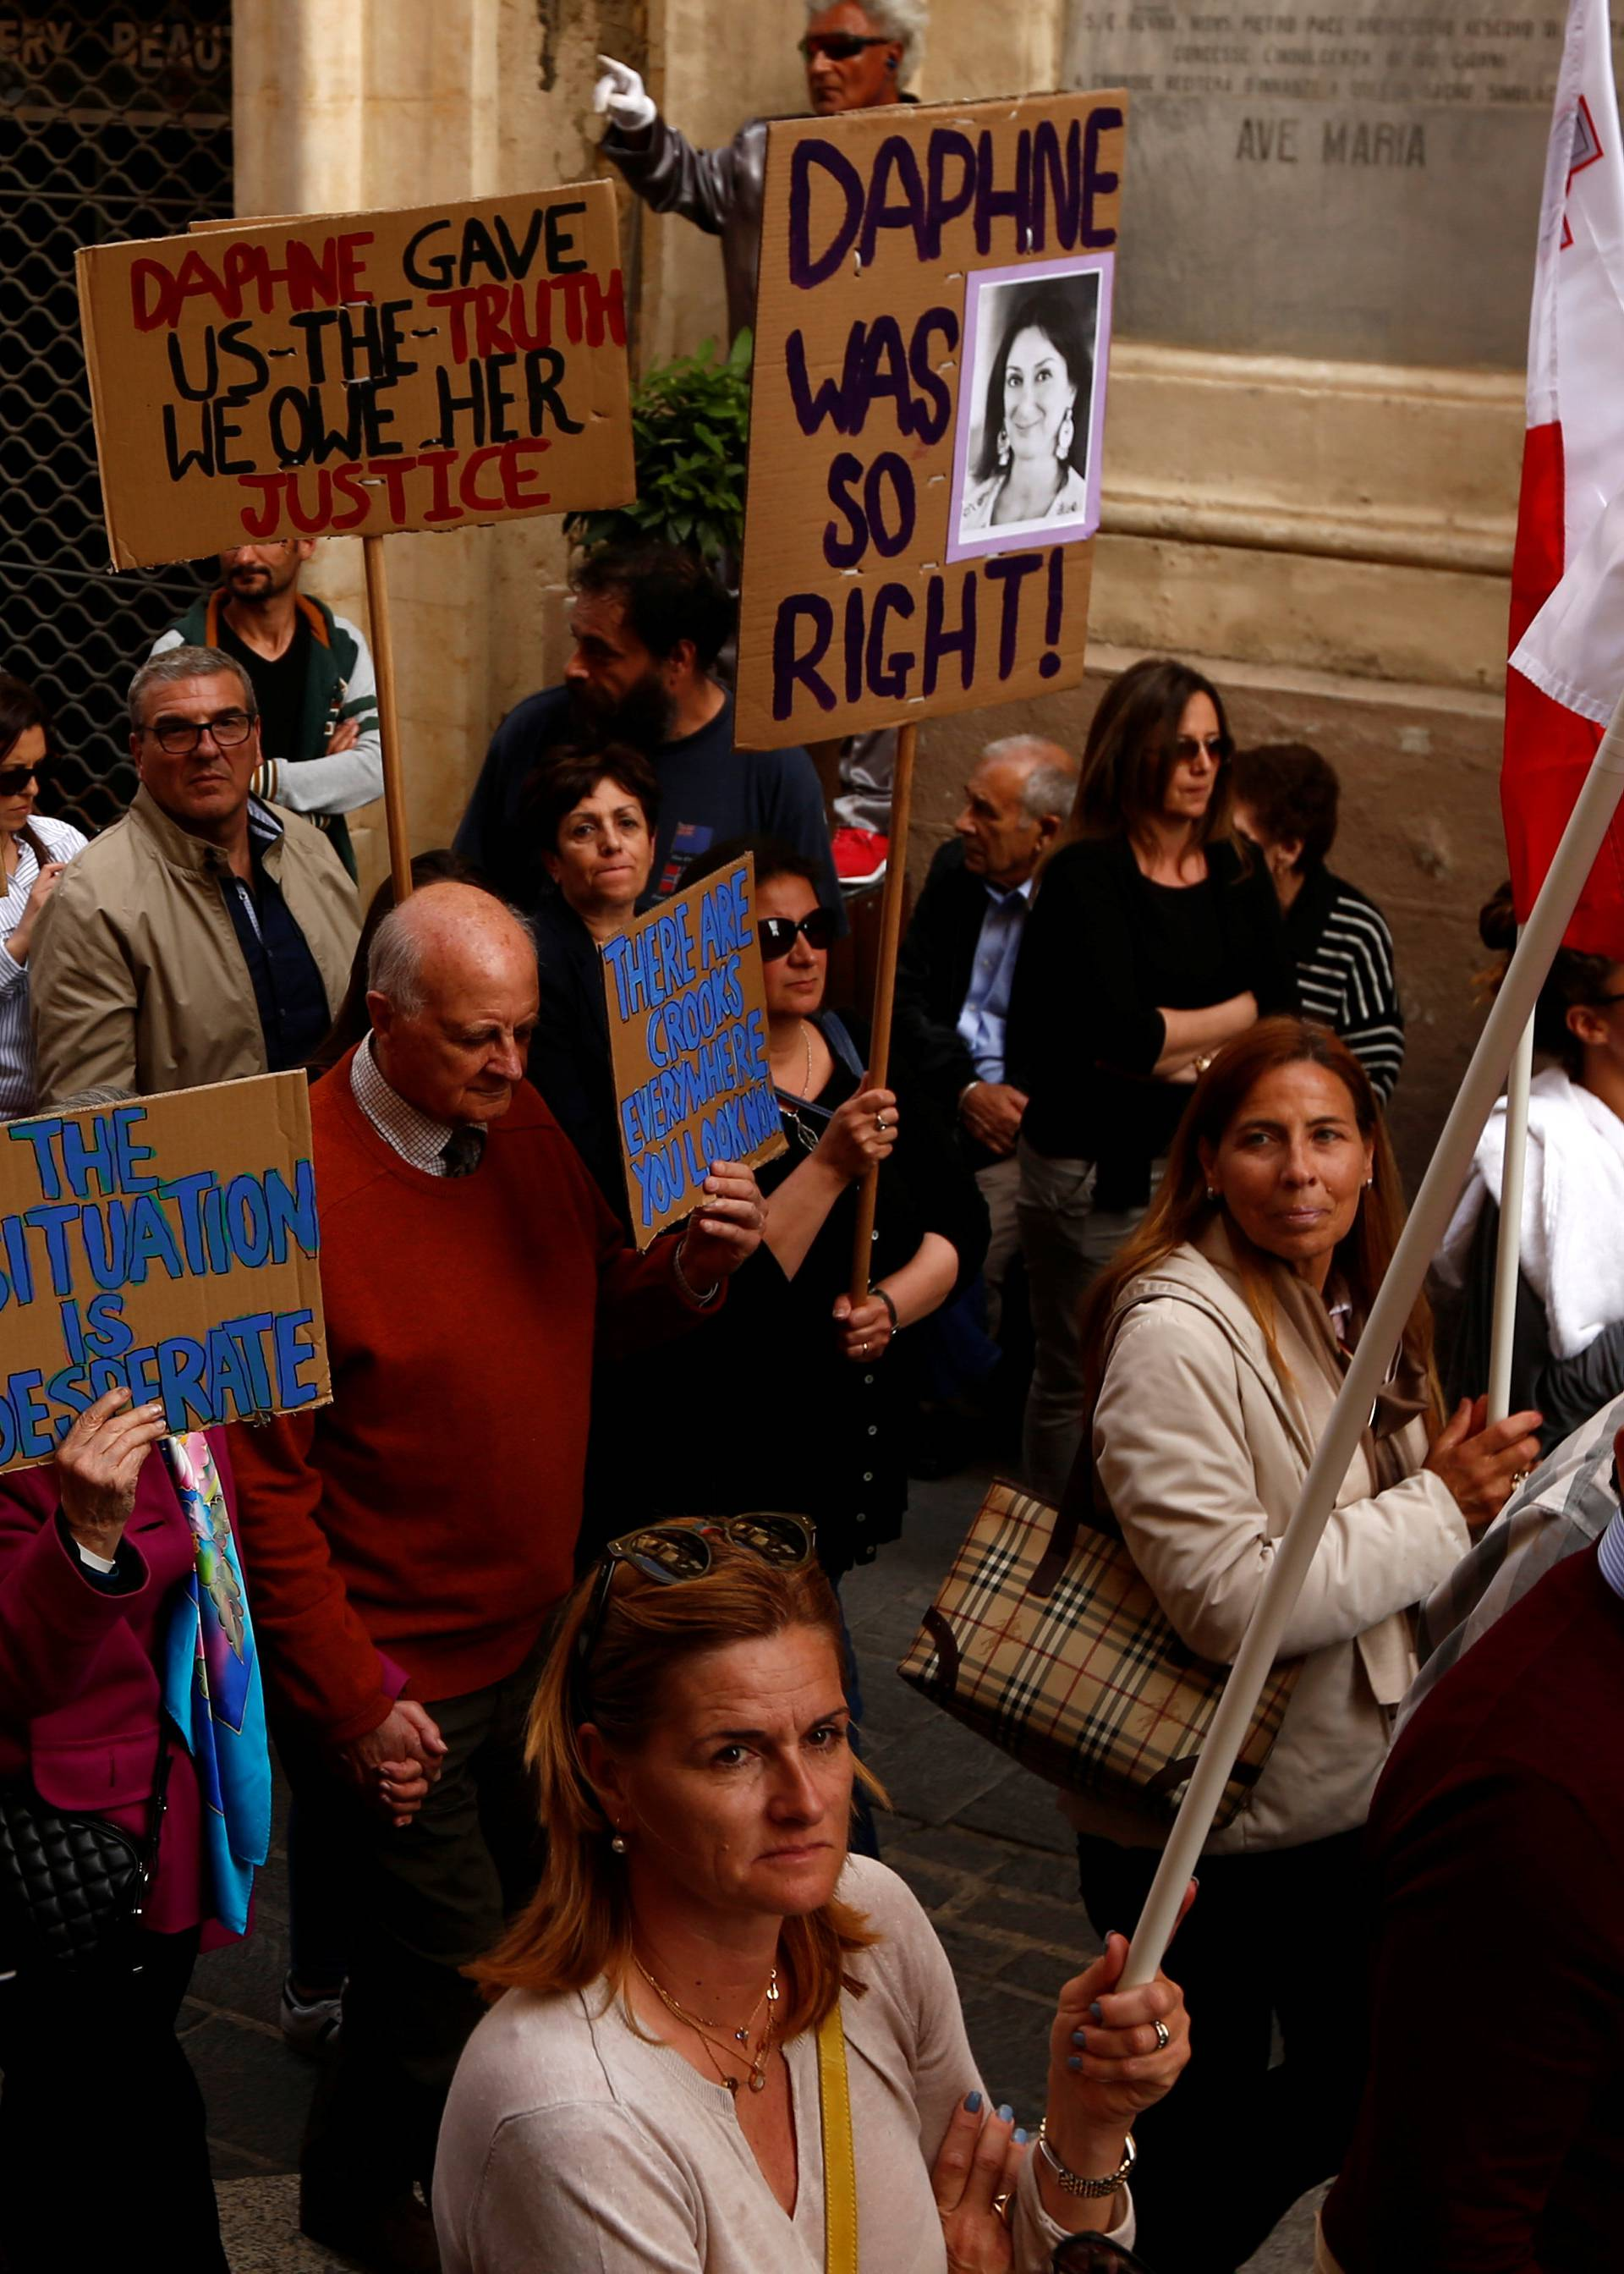 Family members of assassinated anti-corruption journalist Daphne Caruana Galizia take part in a protest against government corruption revealed by the Daphne Project, in Valletta